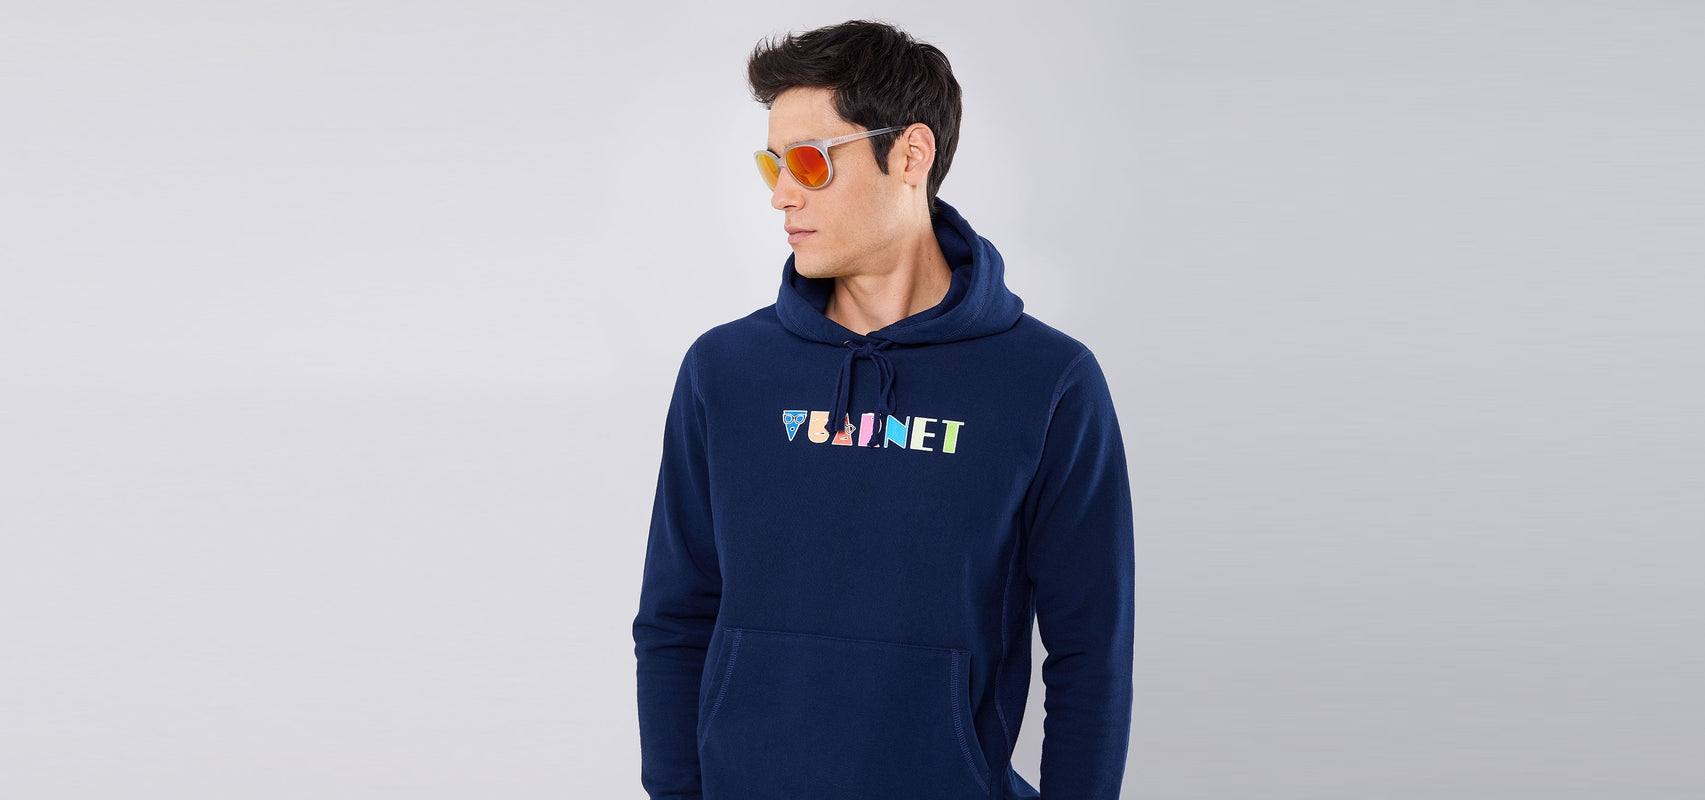 RETRO LOGO SWEATSHIRT